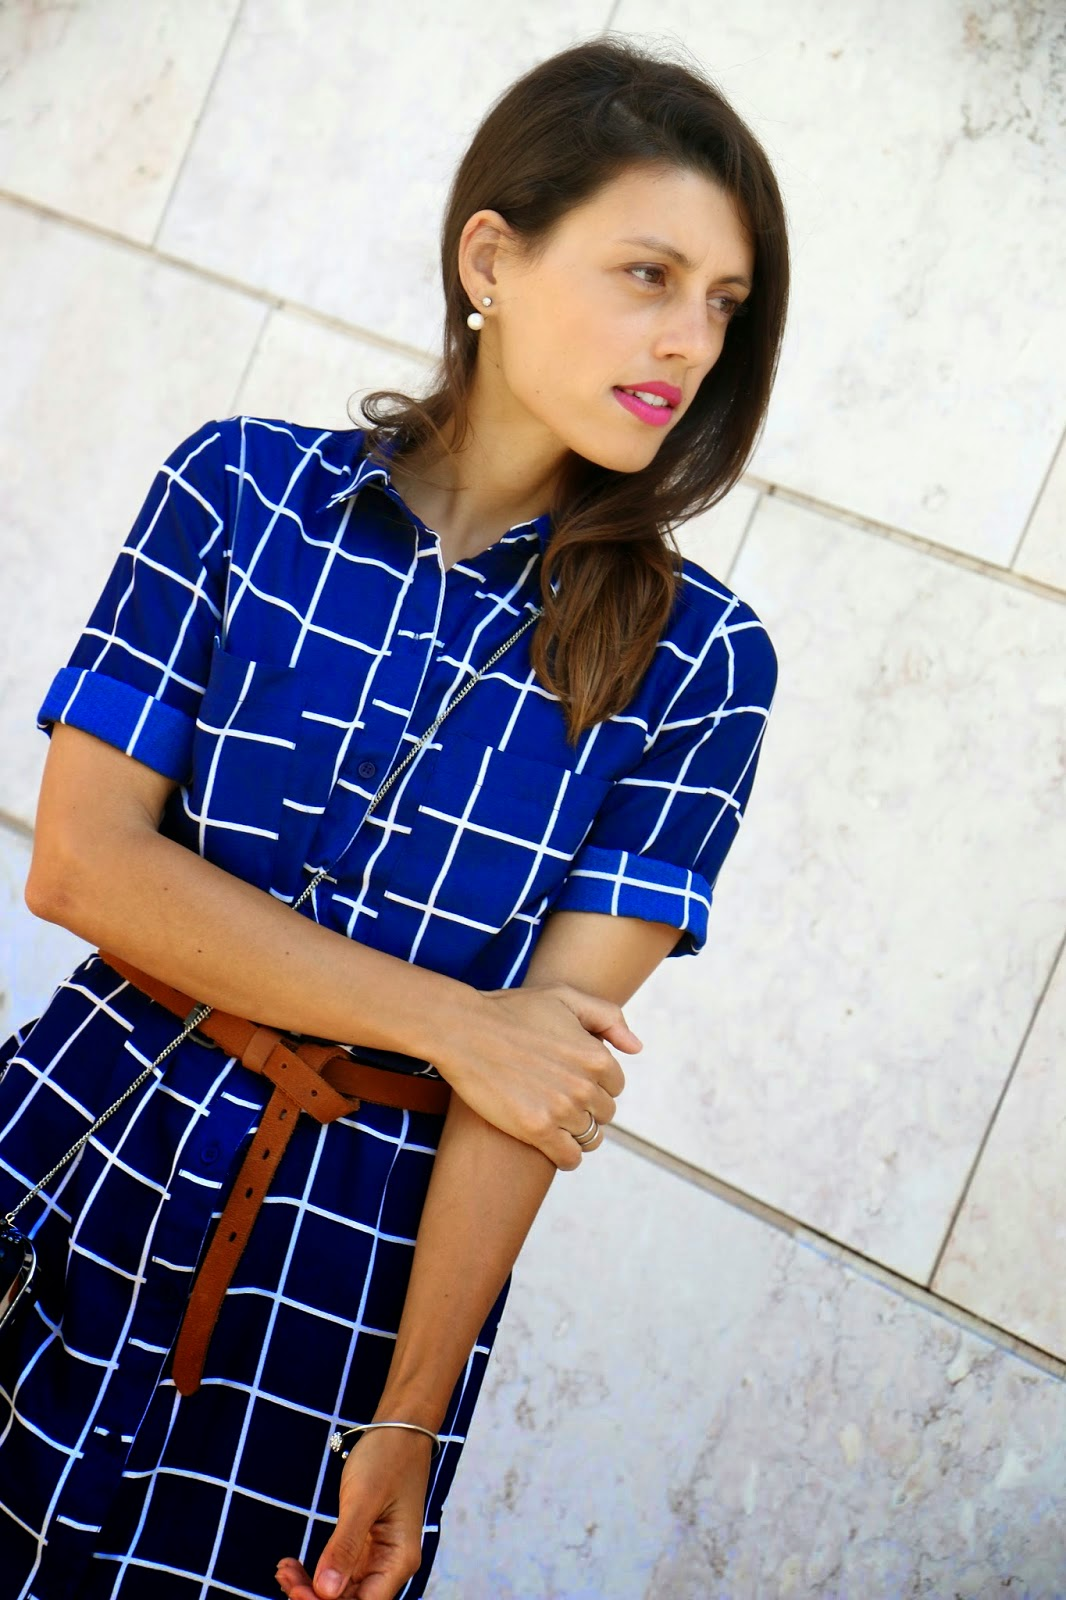 http://ilovefitametrica.blogspot.pt/2014/09/plaid-blue-and-white-print.html